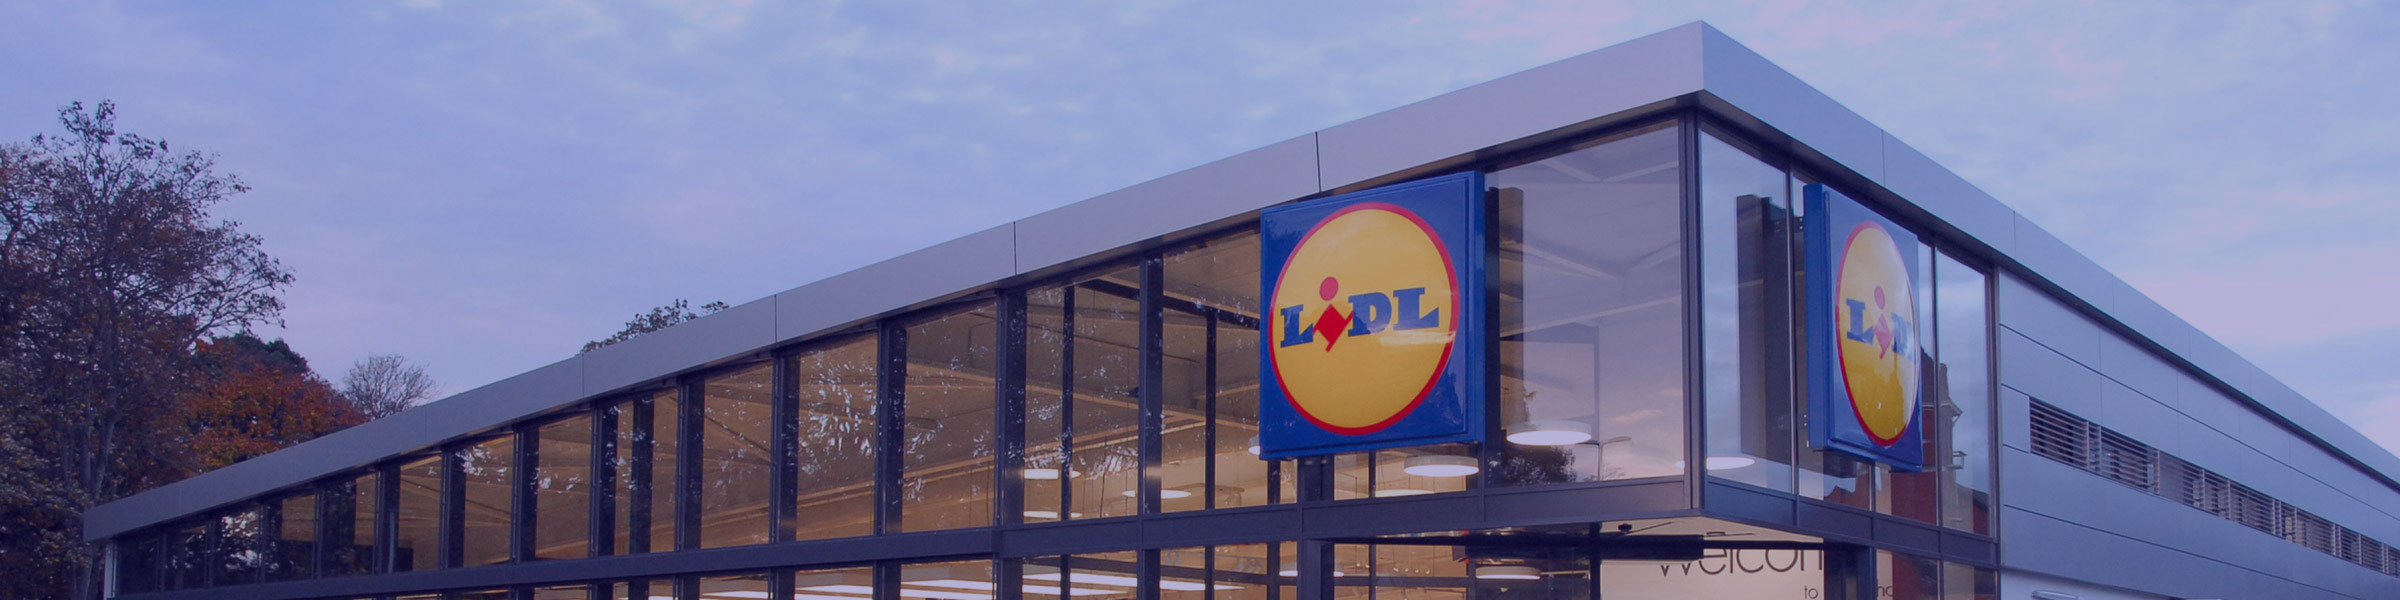 Pod Point Rapid Charge units to be installed at selected Lidl stores across the UK